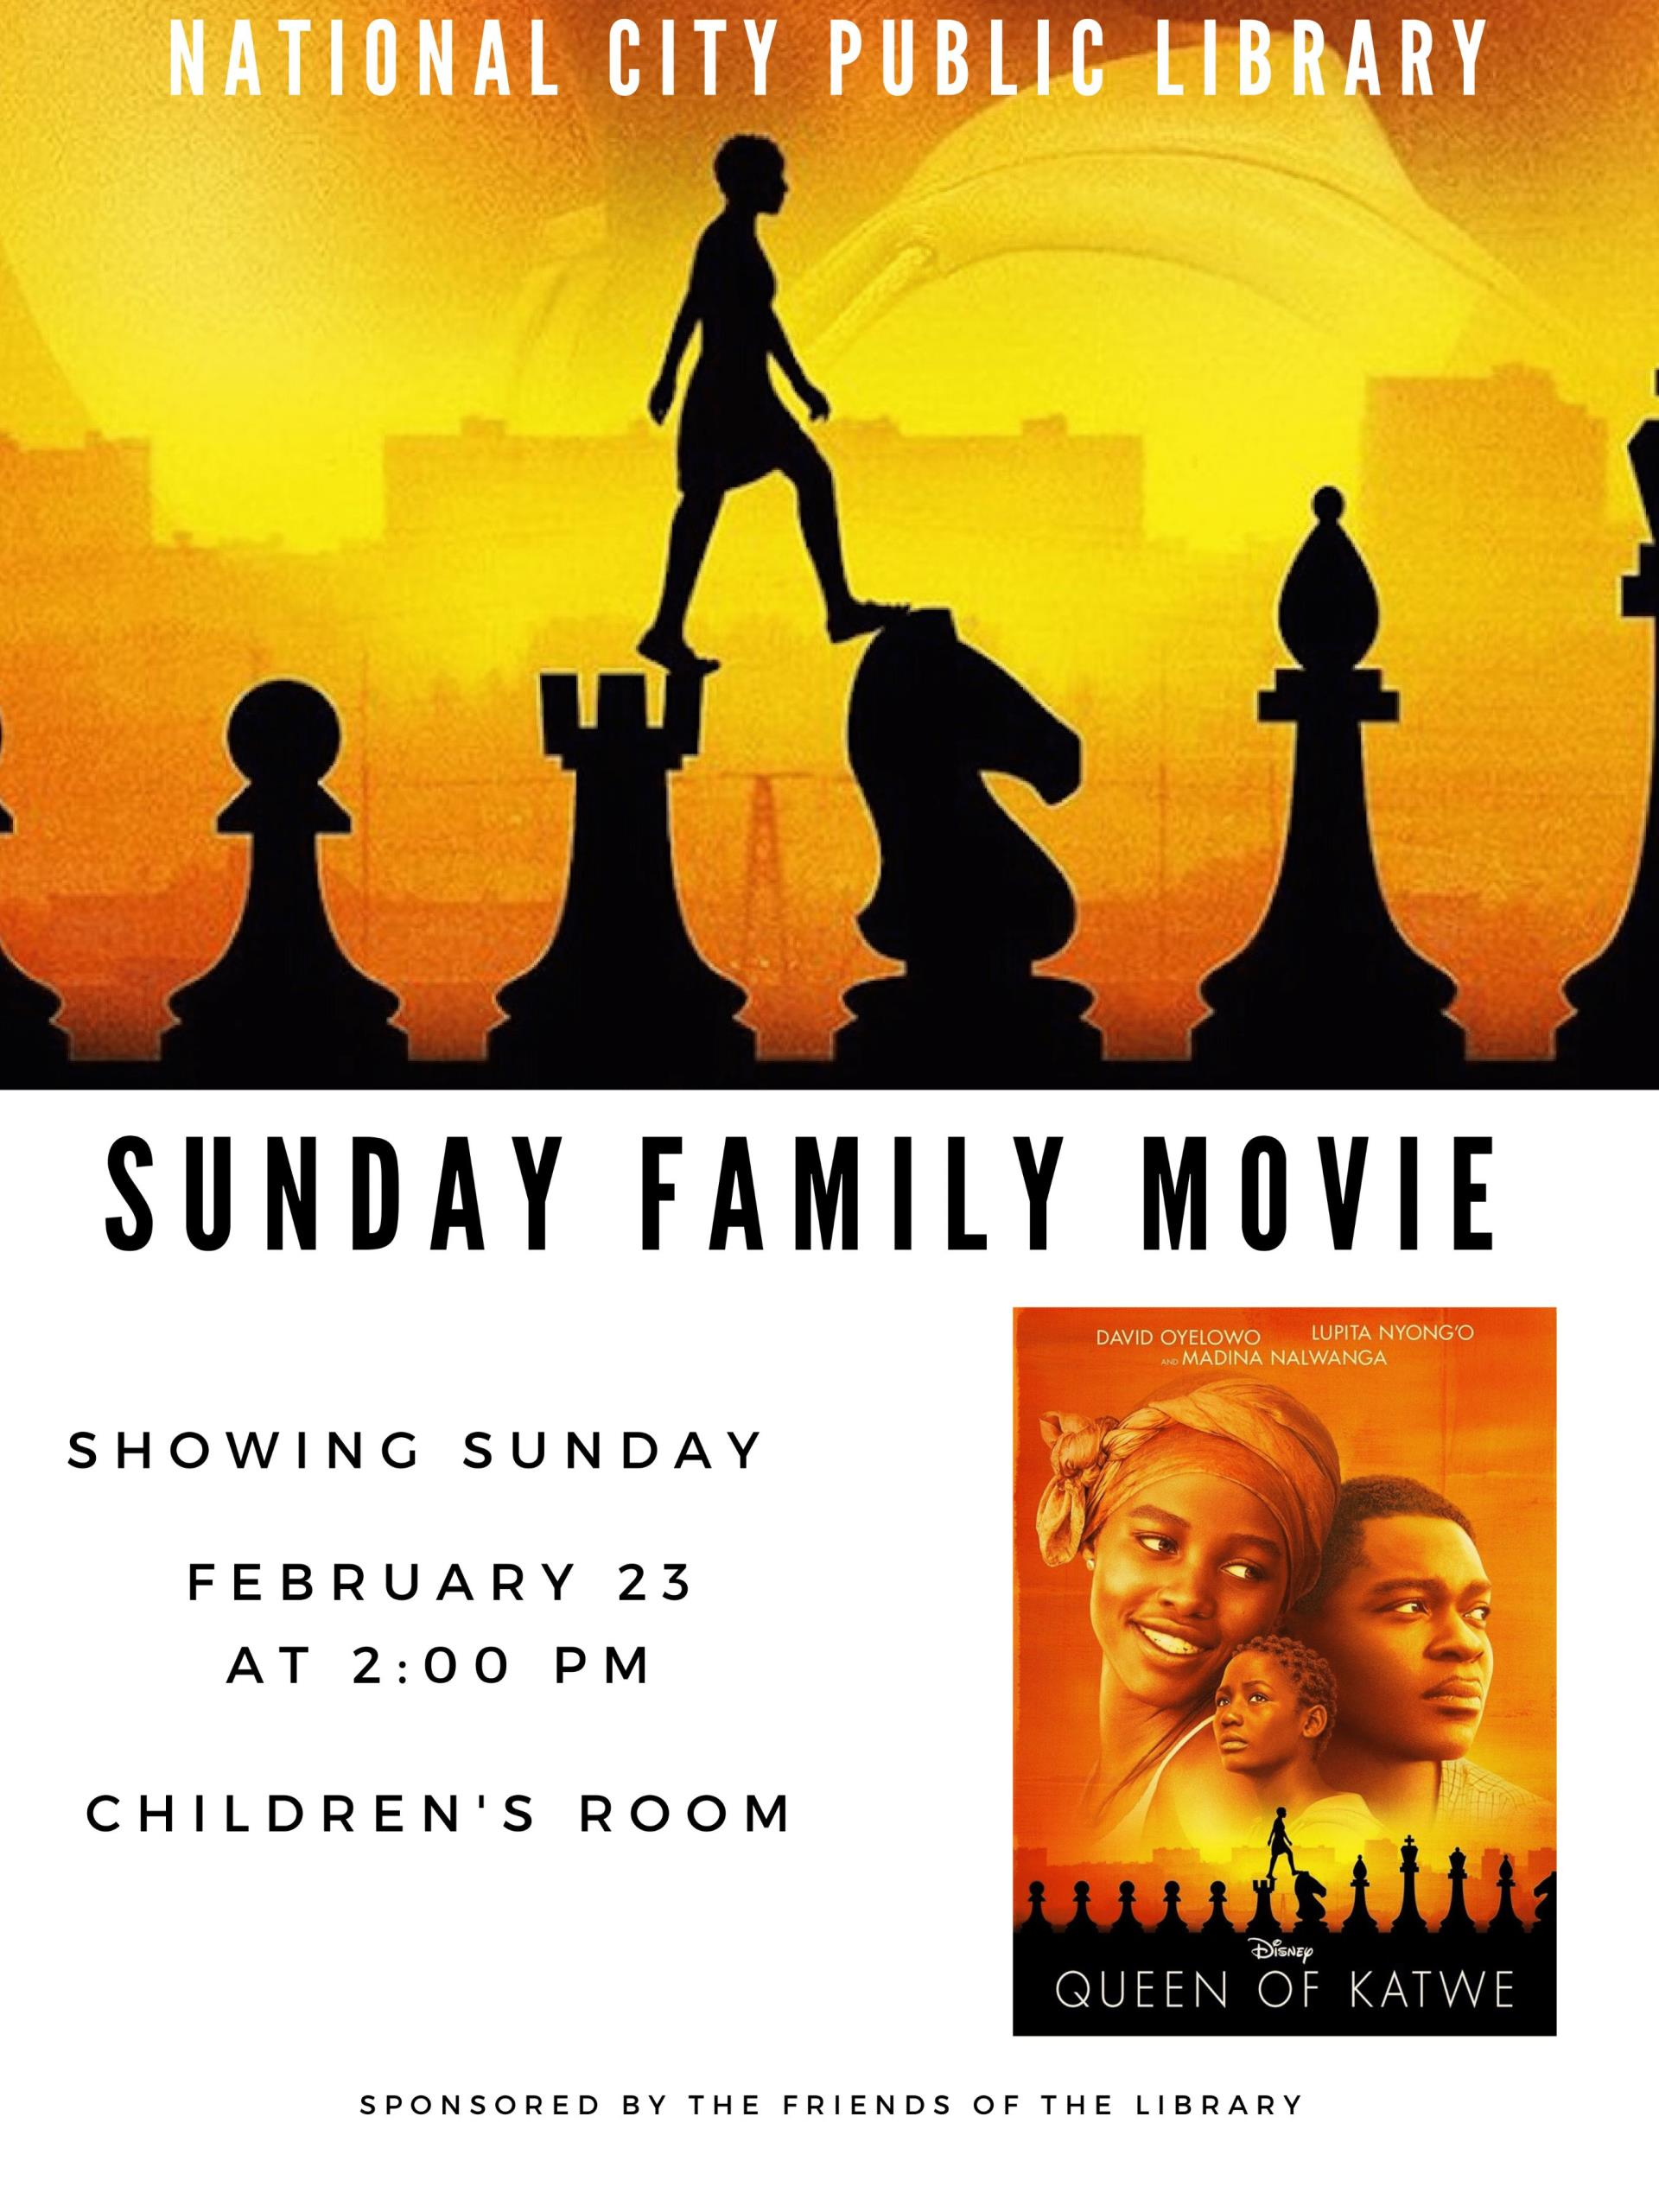 Feb 23 - Queen of Katwe